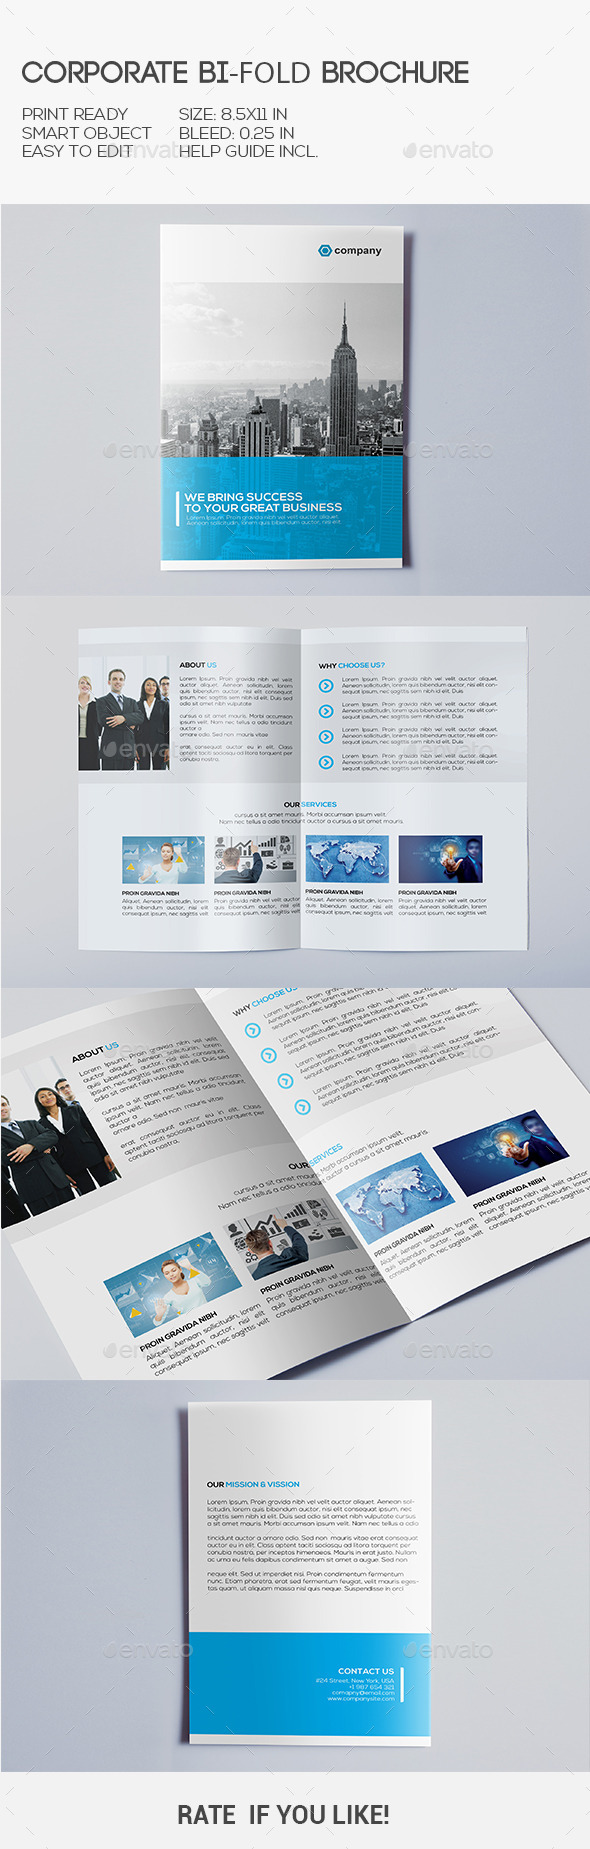 GraphicRiver Corporate Bi-Fold Brochure 10451666